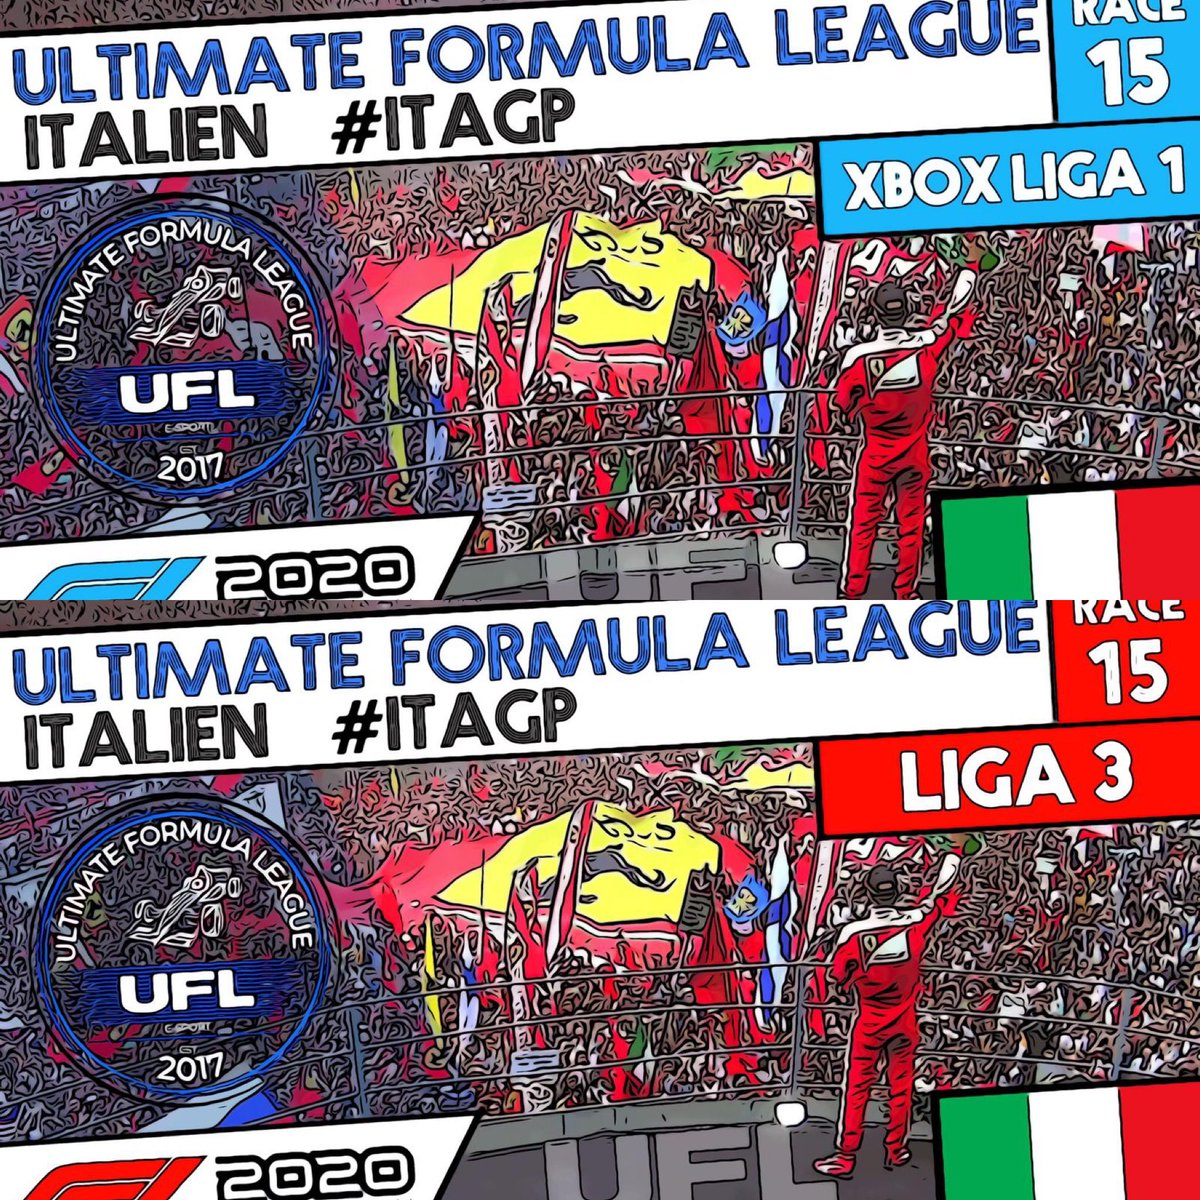 #Raceday  Xbox Liga 1️⃣ 20:10 #twitch / Liga 3️⃣ 20:10 #livestream: Ultimate Formula League  TV #YouTube #F1 #Gaming #Ps4 #xbox #racing #f12020game #f12020 #Formula1 #eSports #f12020ps4 #f12020xbox #onlineracing #britishgp 🇬🇧 https://t.co/qDweQPou5Z